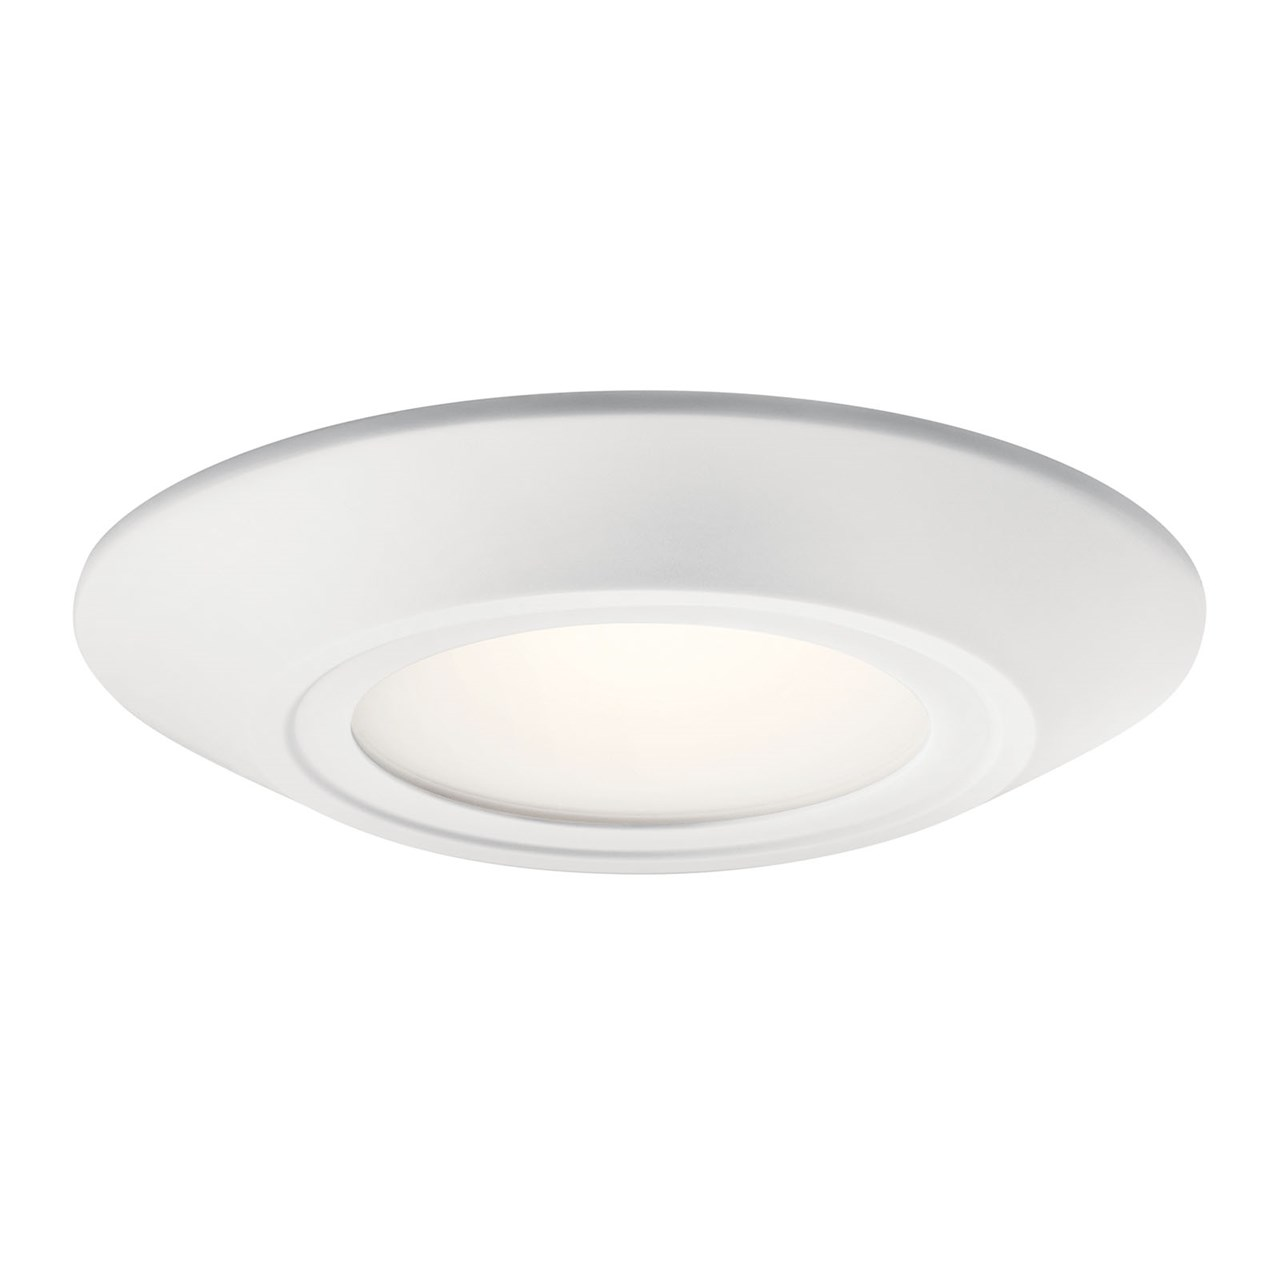 Horizon II 2700K LED Downlight White